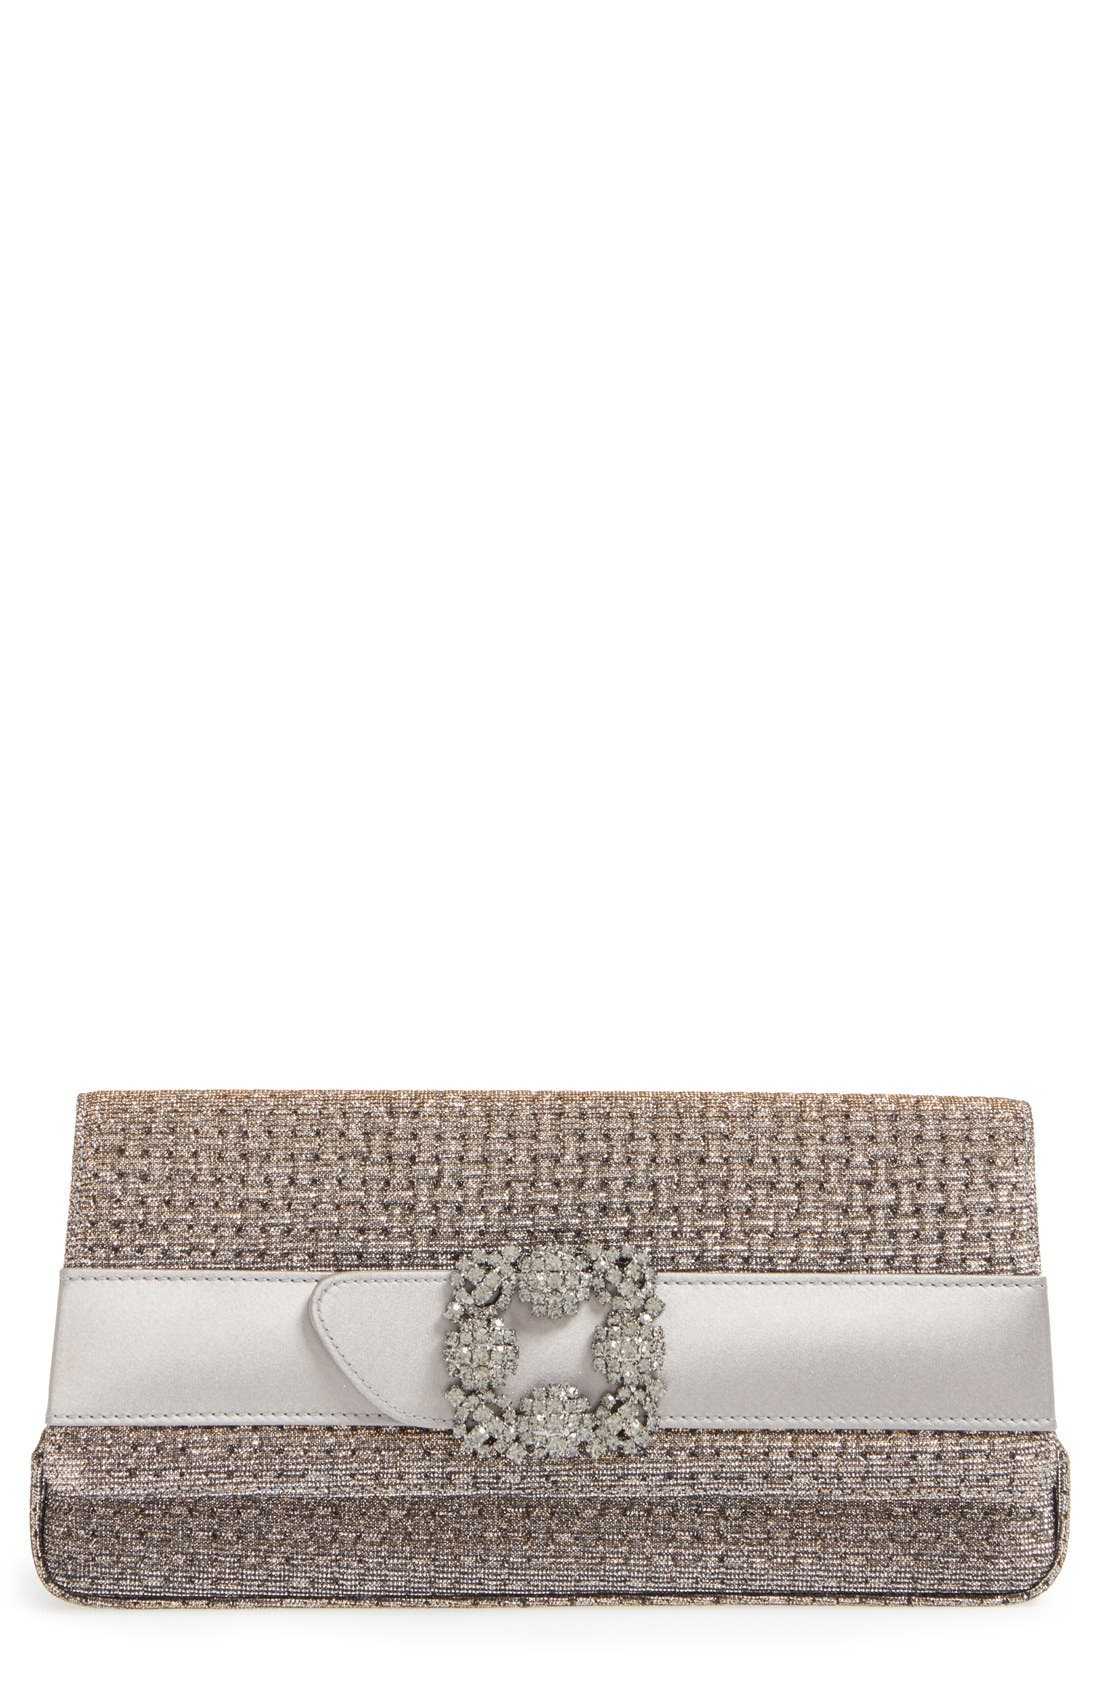 'Gothisi' Clutch,                             Main thumbnail 3, color,